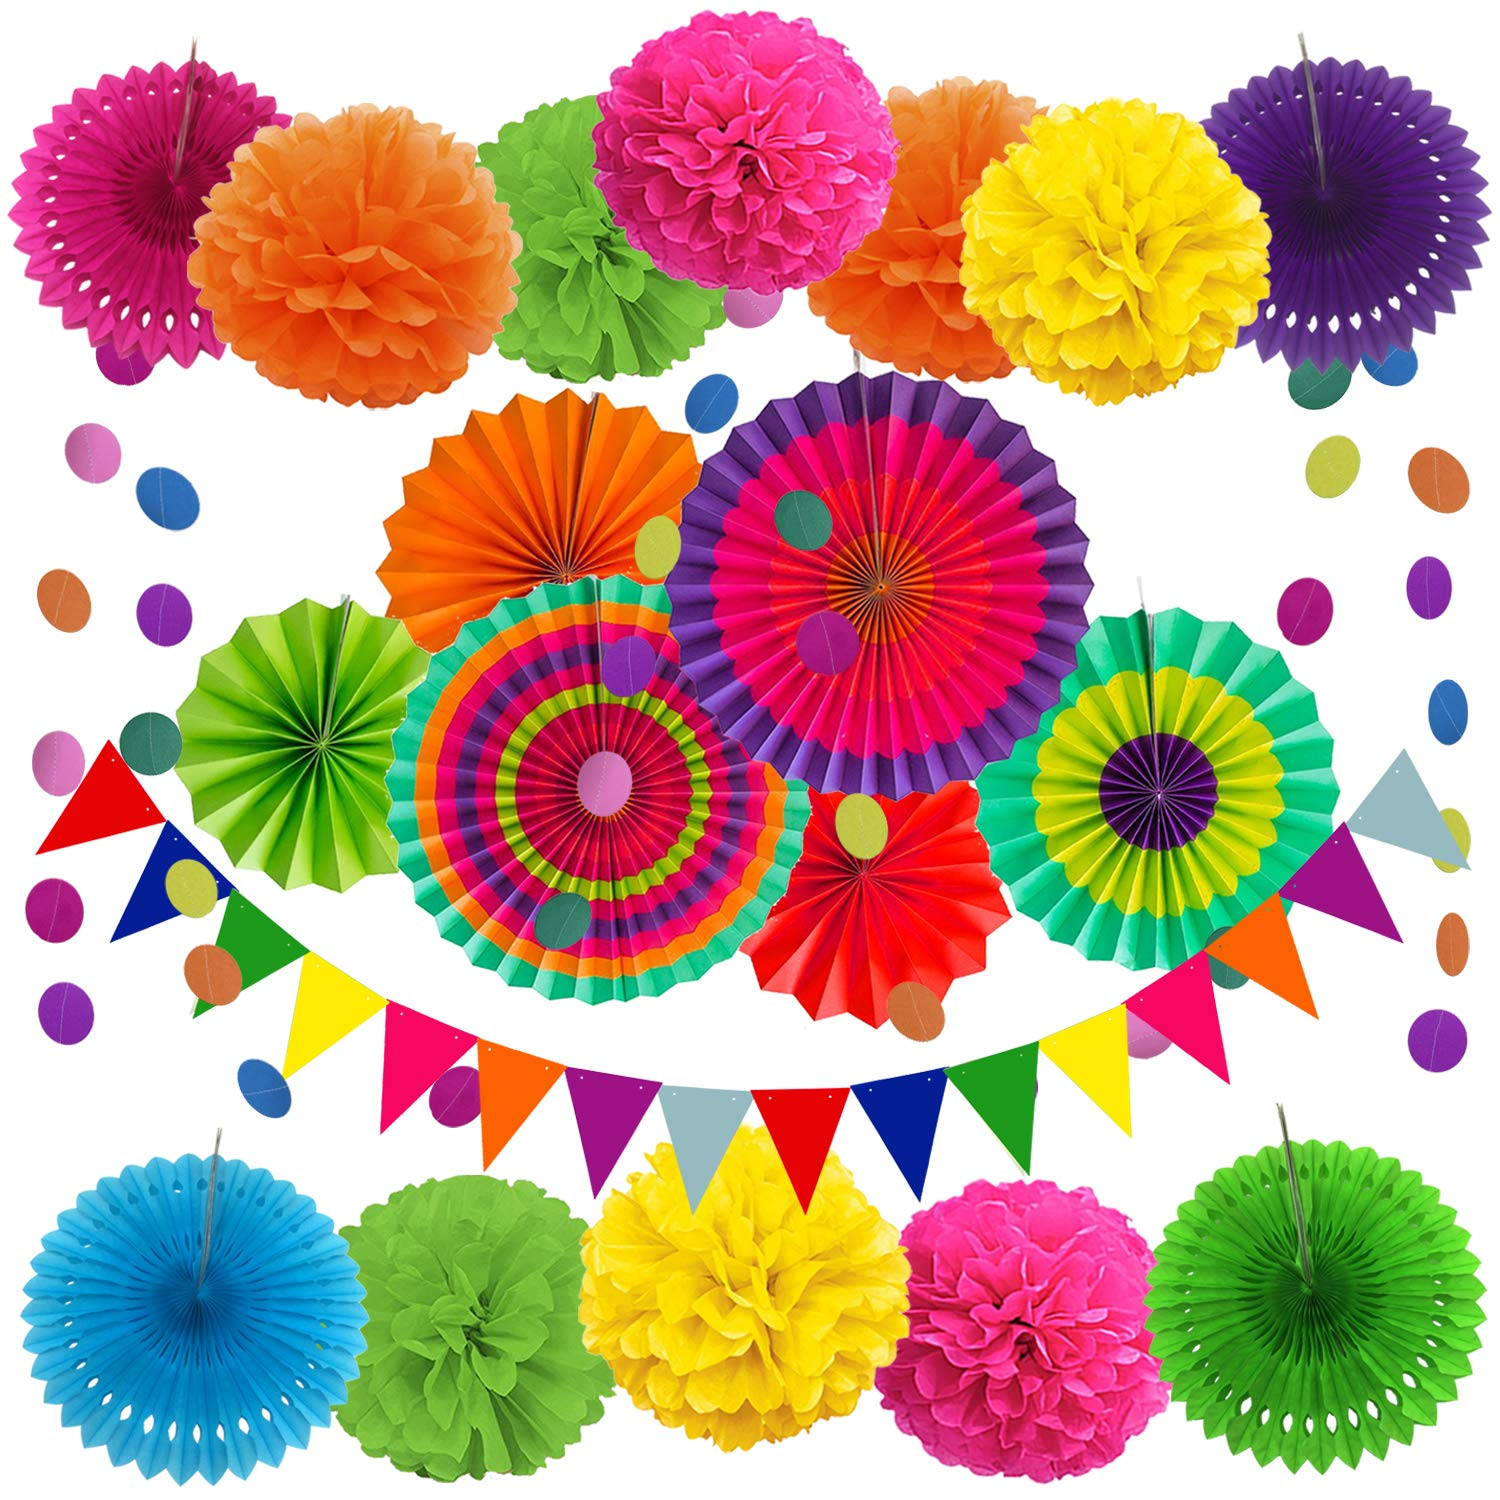 ZERODECO Party Decoration, 21 Pcs Multi-color Hanging Paper Fans, Pom Poms Flowers, Garlands String Polka Dot and Triangle Bunting Flags for Birthday Parties, Wedding Décor, Fiesta or Mexican Party by Zerodeco